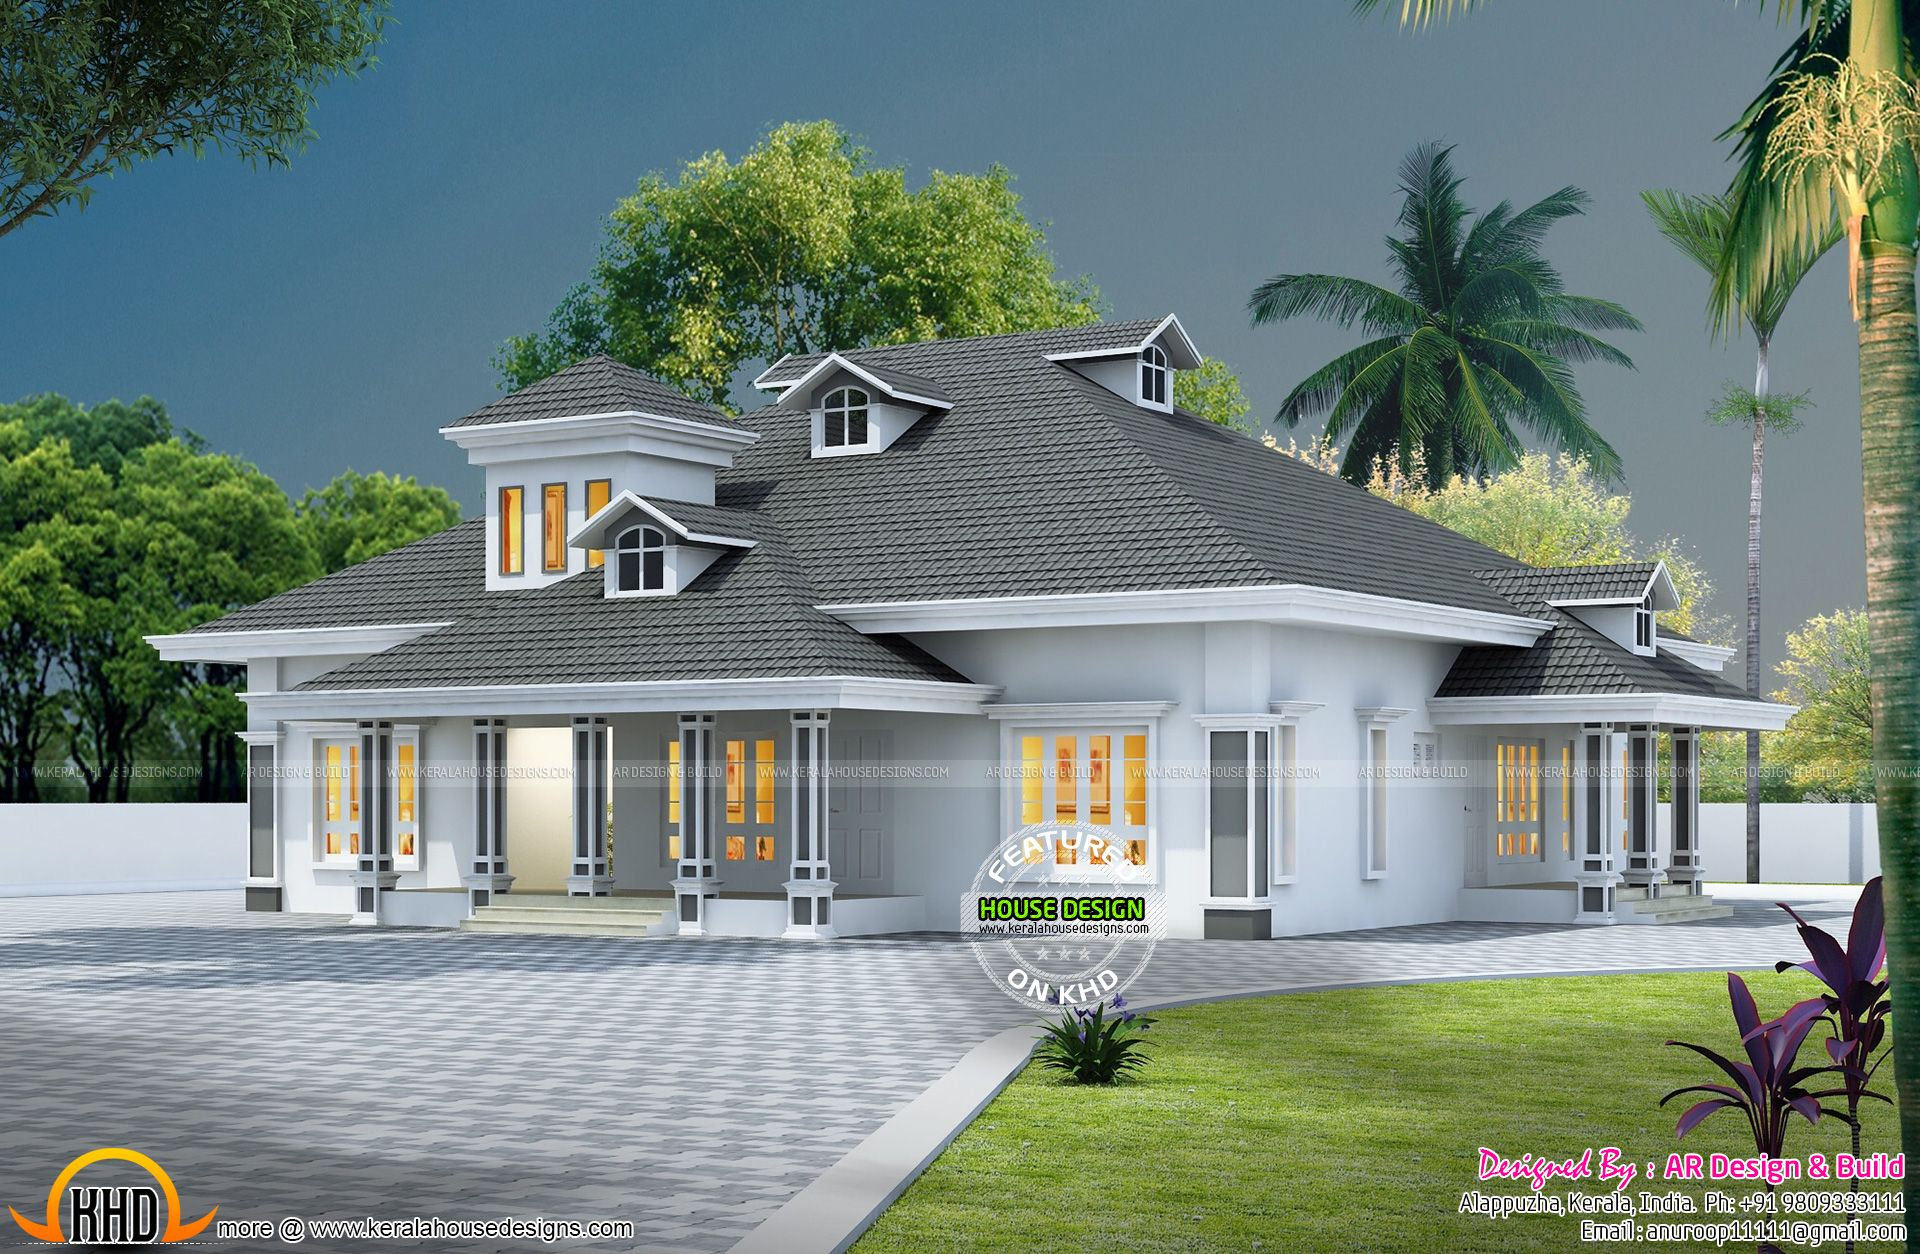 House exterior plans india also hiqra kerala design rh pinterest